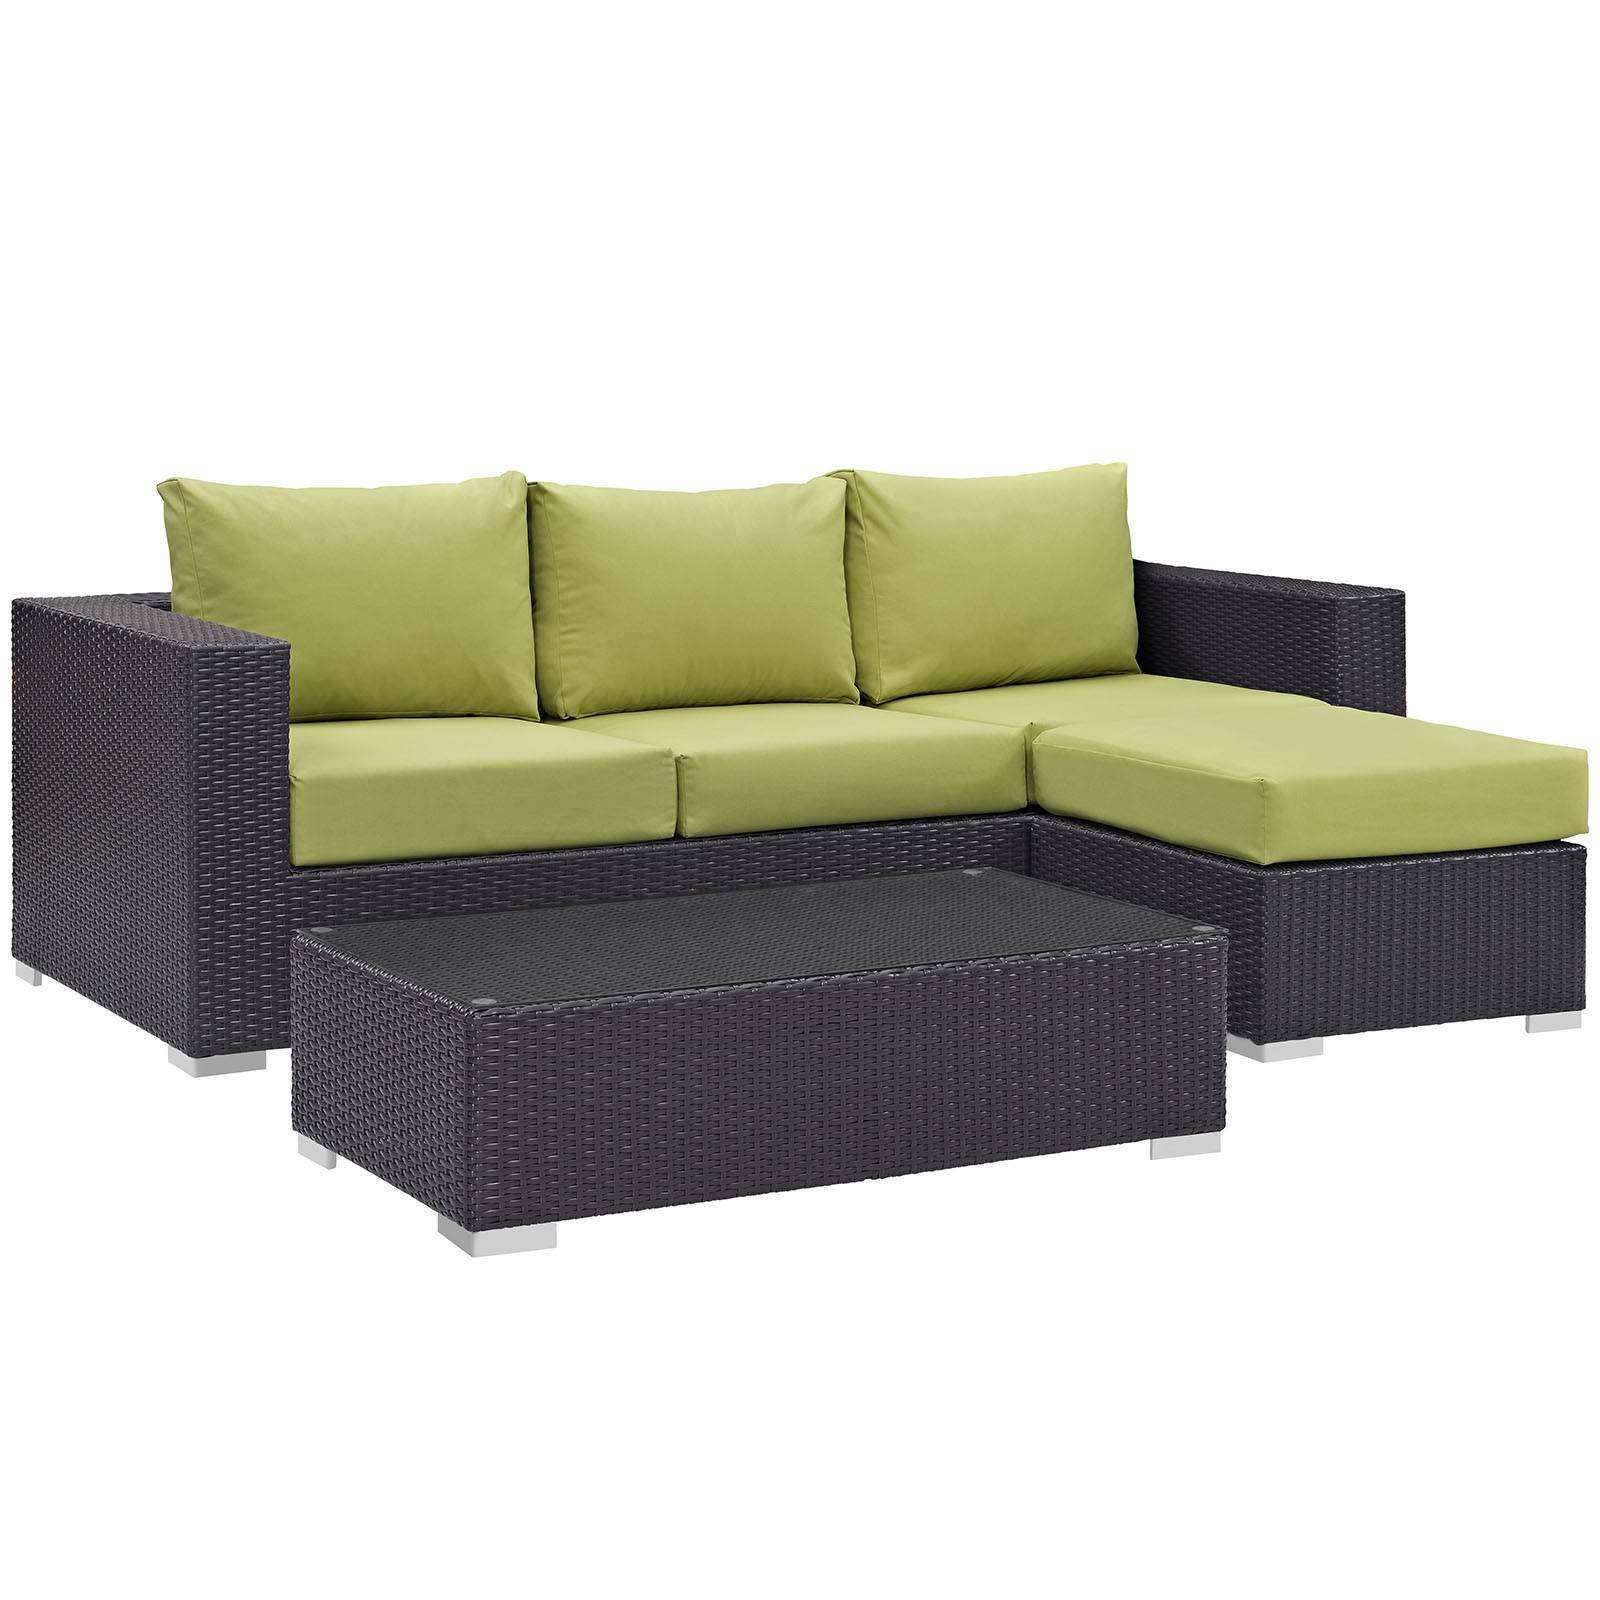 of sofa sectional chairs lovable furniture wicker best outdoor sale luxury patio